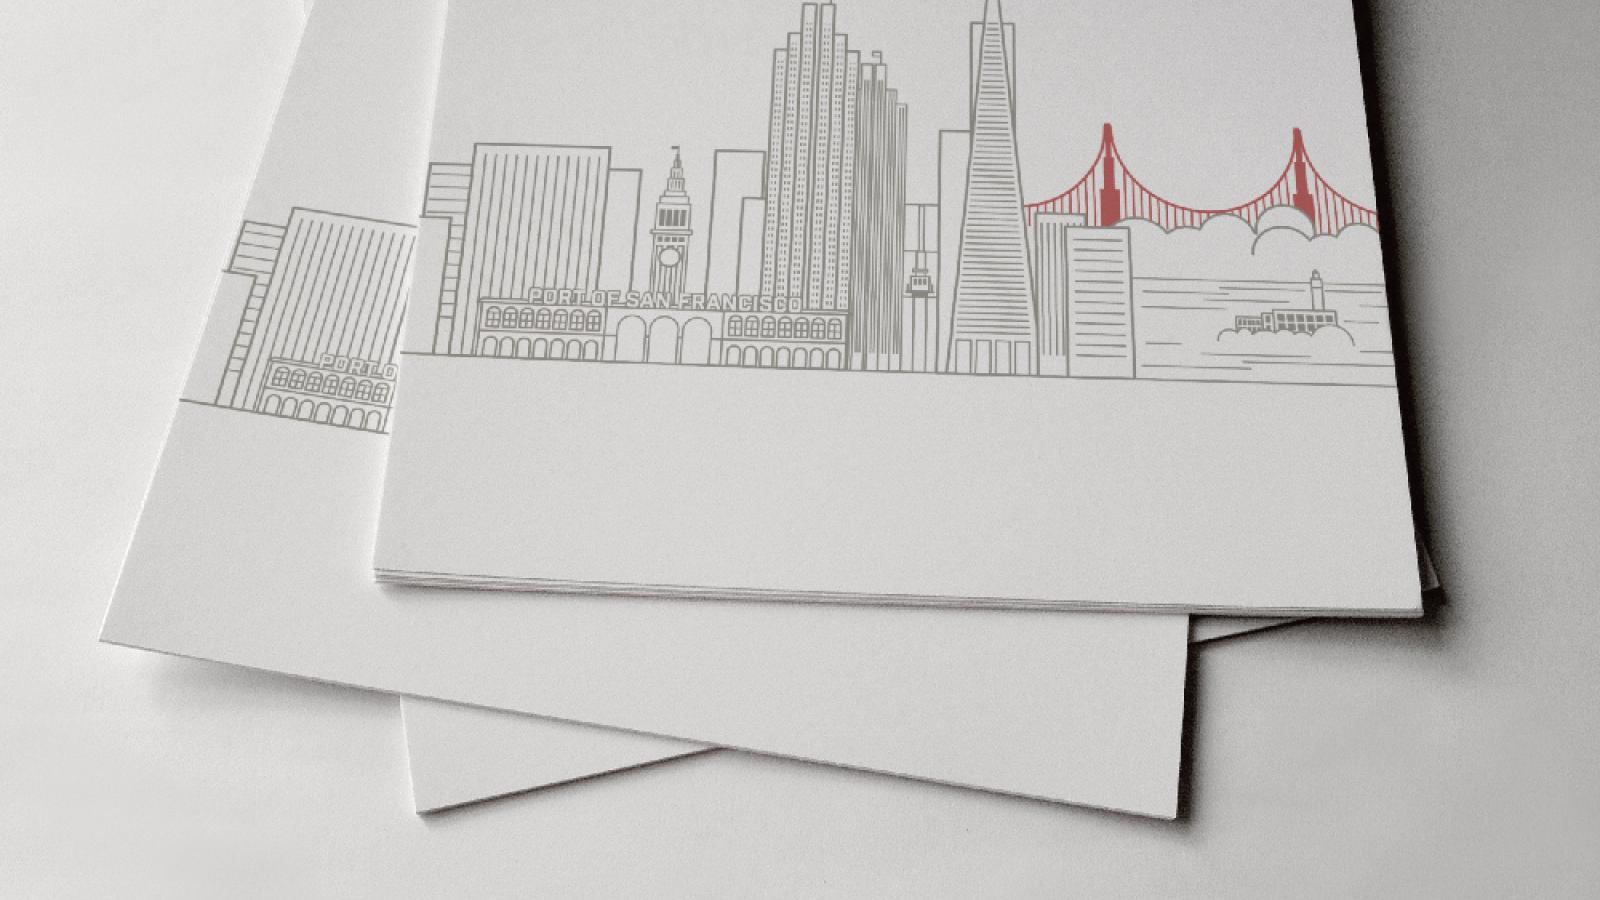 San Francisco Skyline in Illustrator